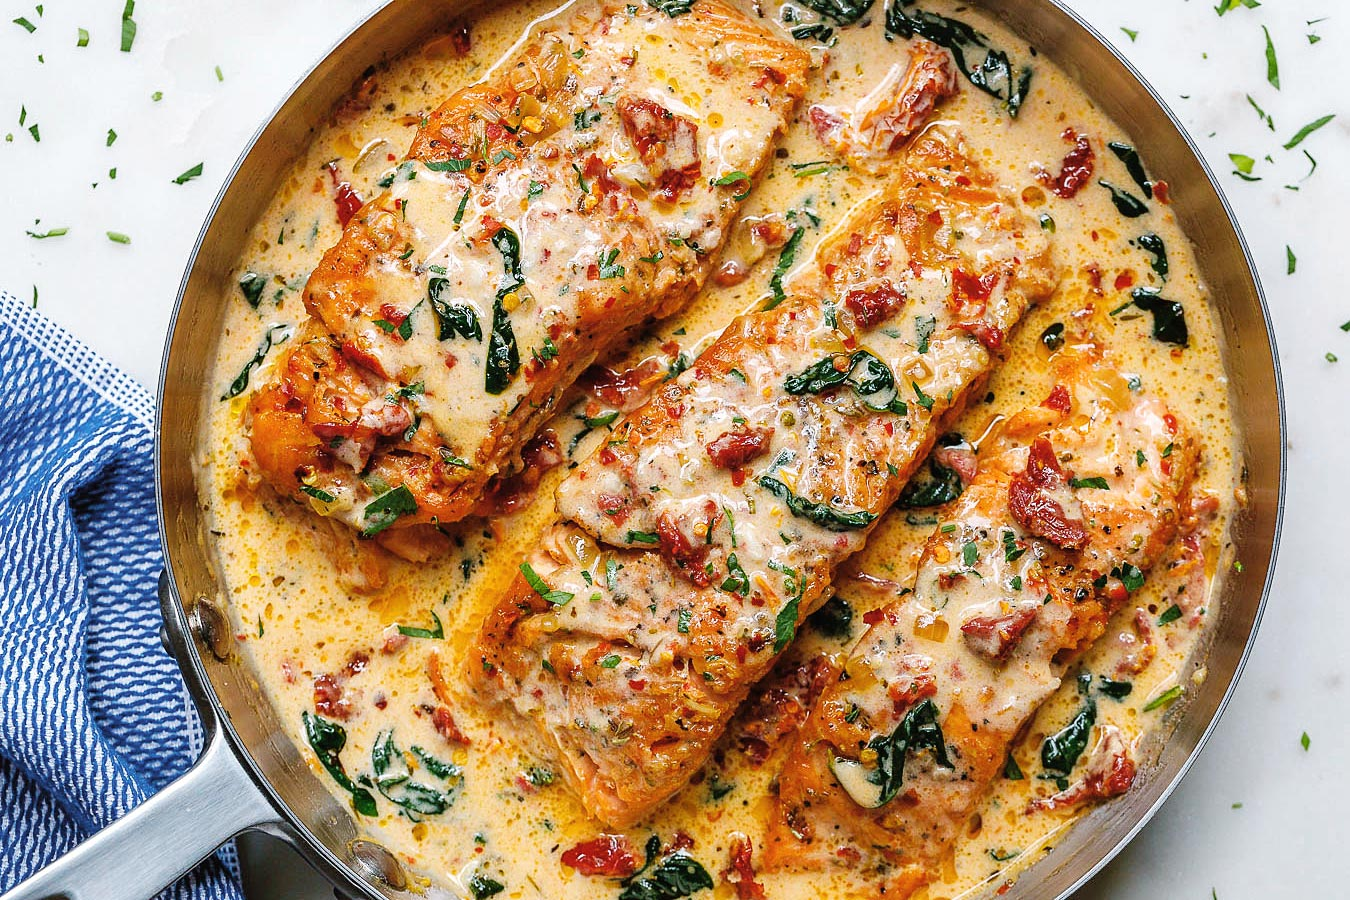 The 5 Most Mouthwatering Fish Recipes- Garlic Tuscan Salmon